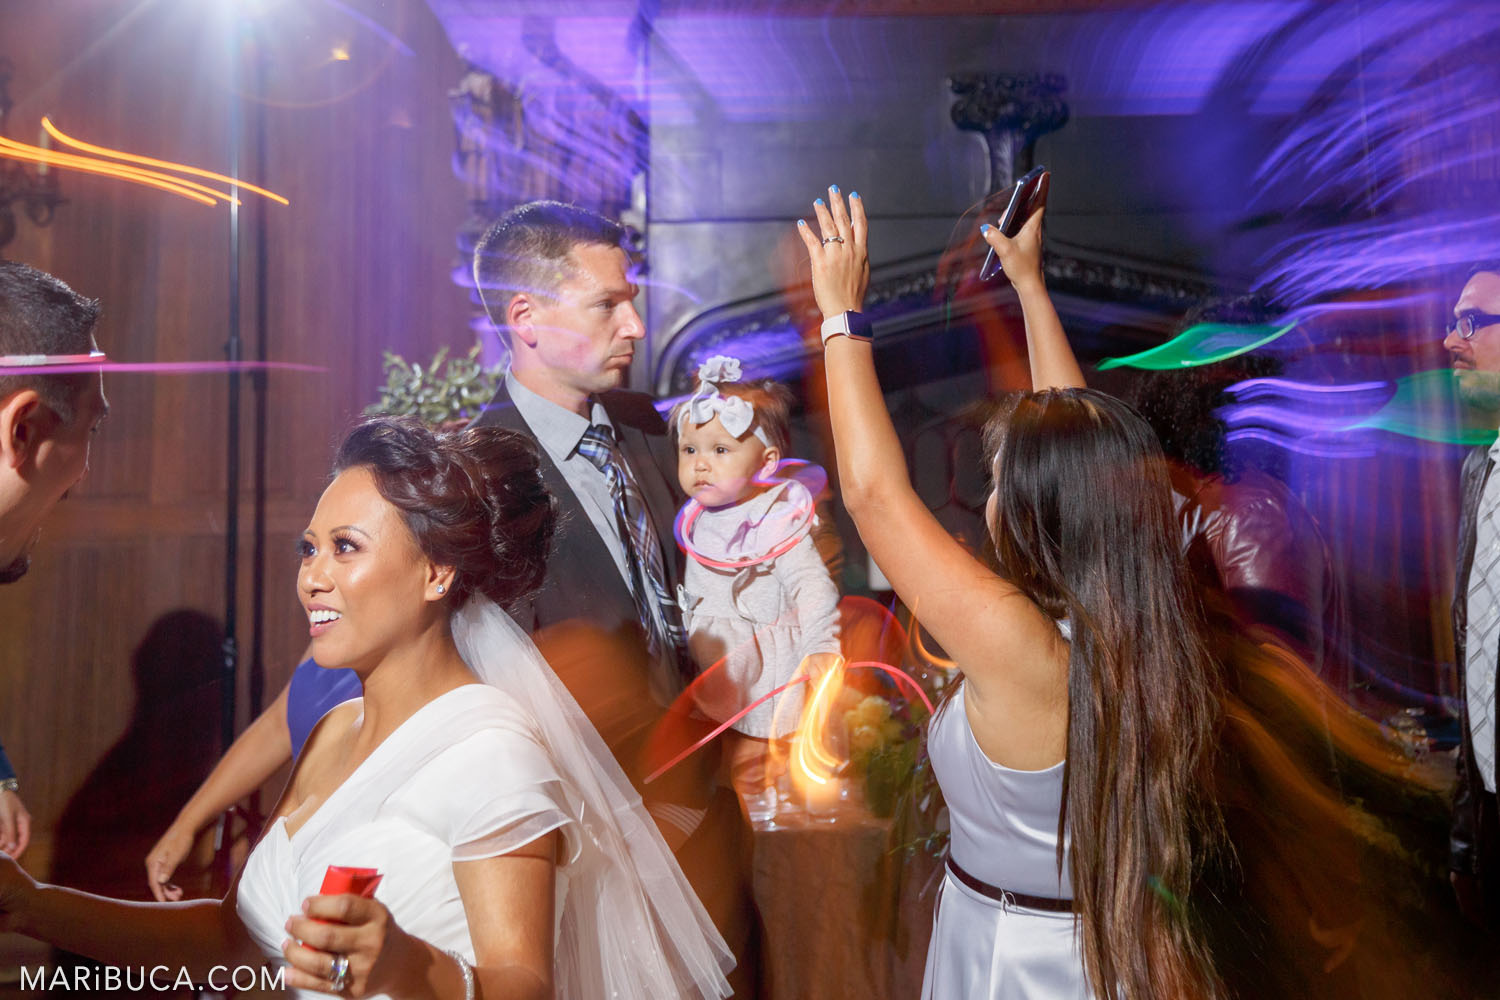 The bride and guests are dancing during the wedding reception in the Great Hall, Kohl Mansion, Burlingame